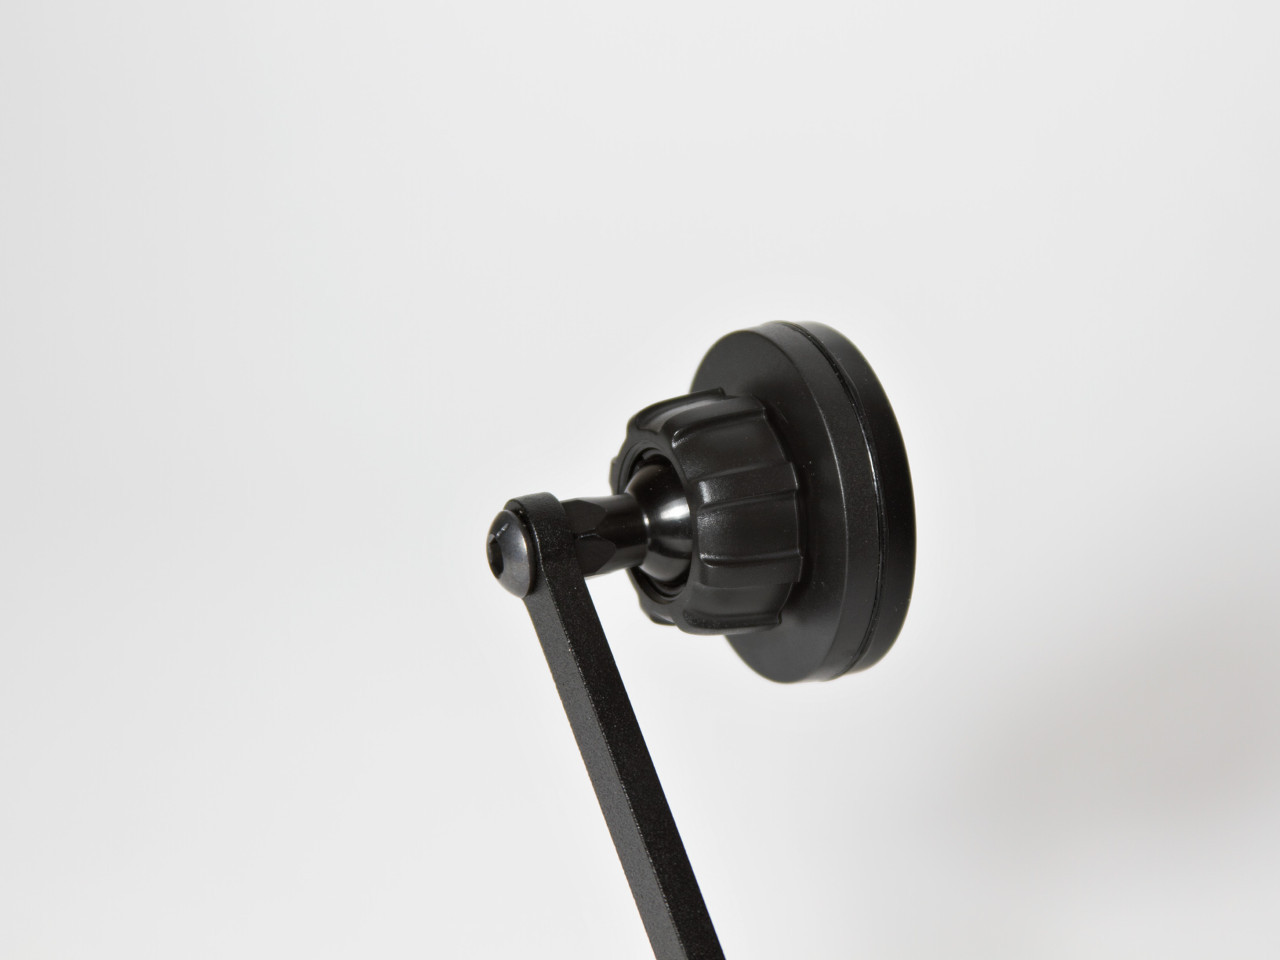 The magnetic phone holder on the CravenSpeed Gemini Phone Mount.